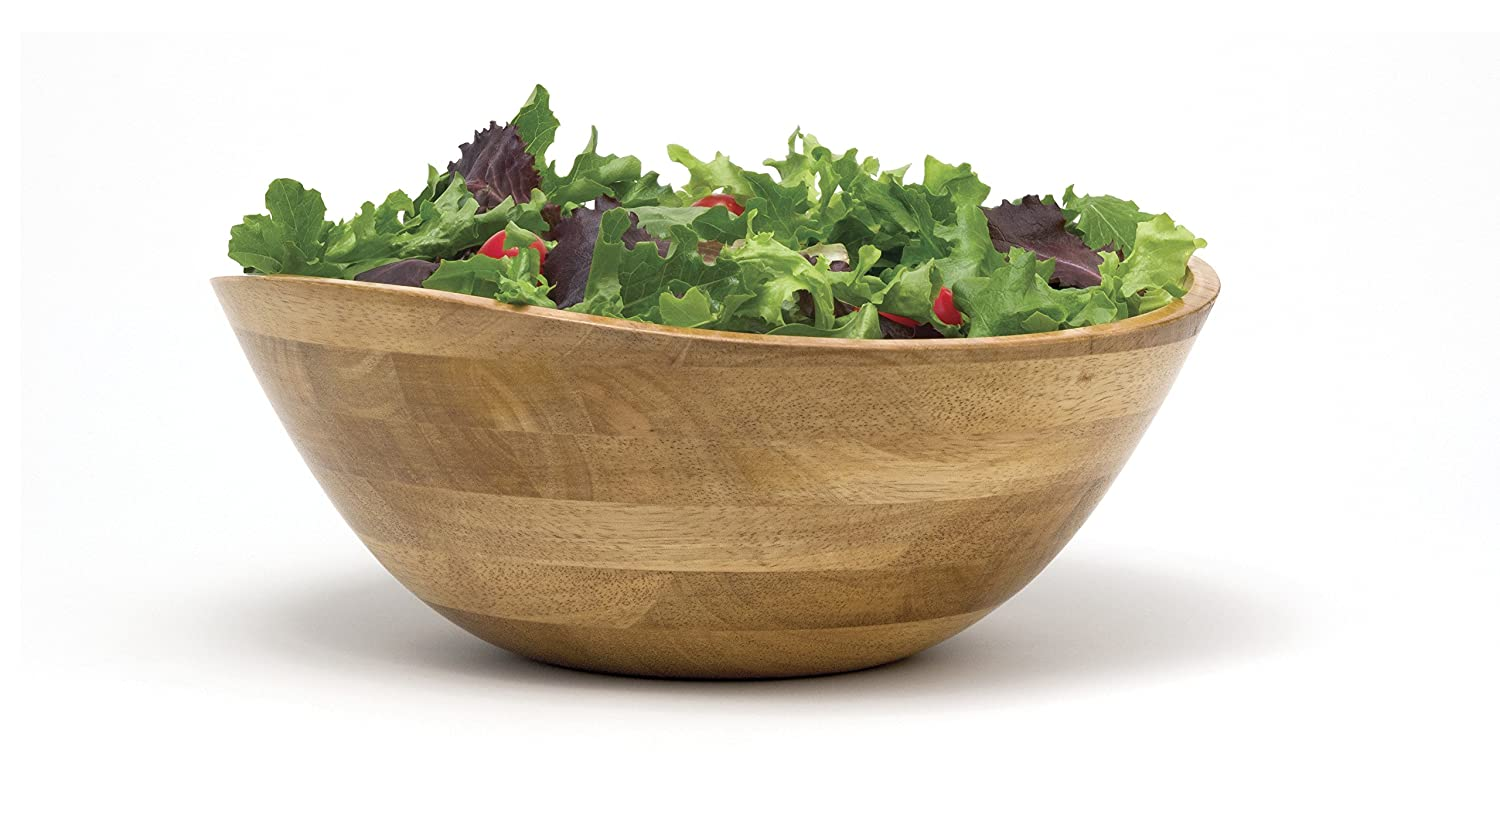 Single Bowl Lipper International 2173 Cherry Finished Wavy Rim Serving Bowl for Fruits or Salads Small 6-1//8 Diameter x 3 Height